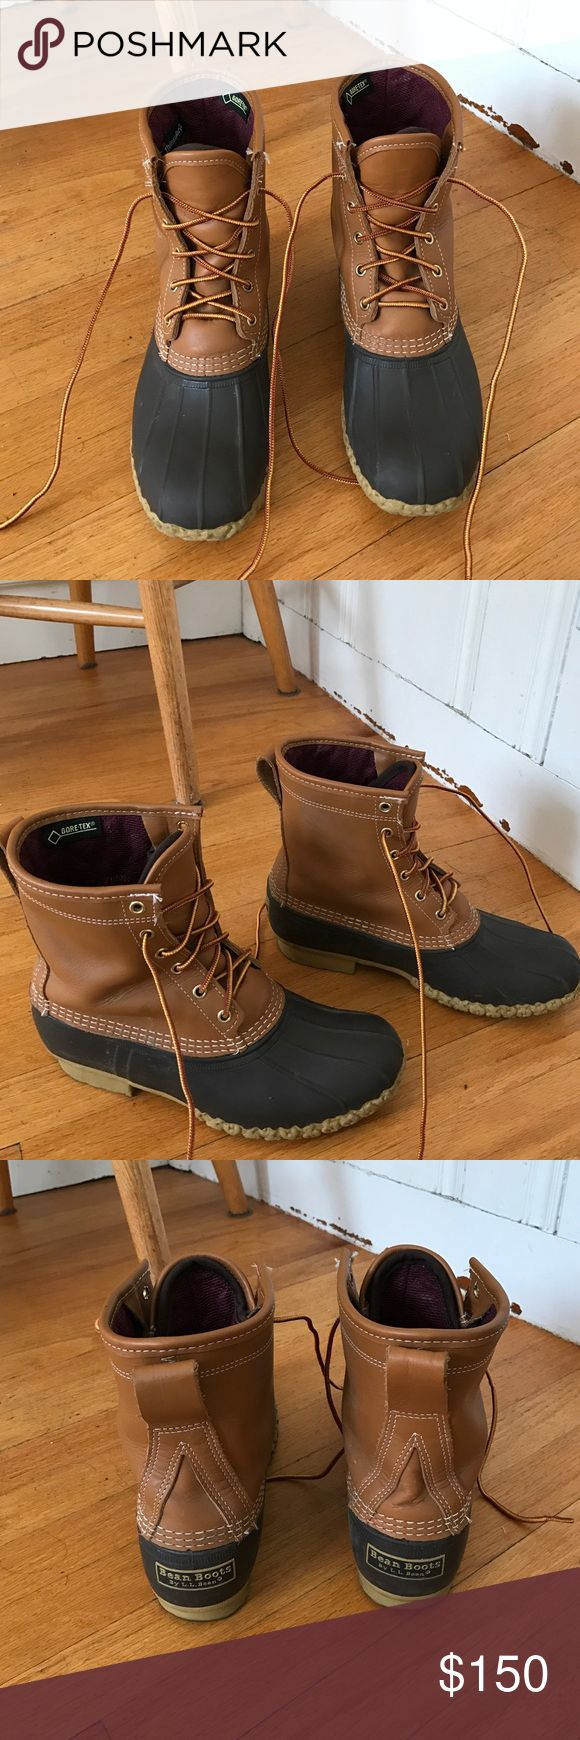 """Women's L.L. Bean boots, 8"""" Gore-Tex/Thinsulate Really well kept bean boots with goretex and thinsulate lining, super warm, only slightly used L.L. Bean Shoes Winter & Rain Boots"""